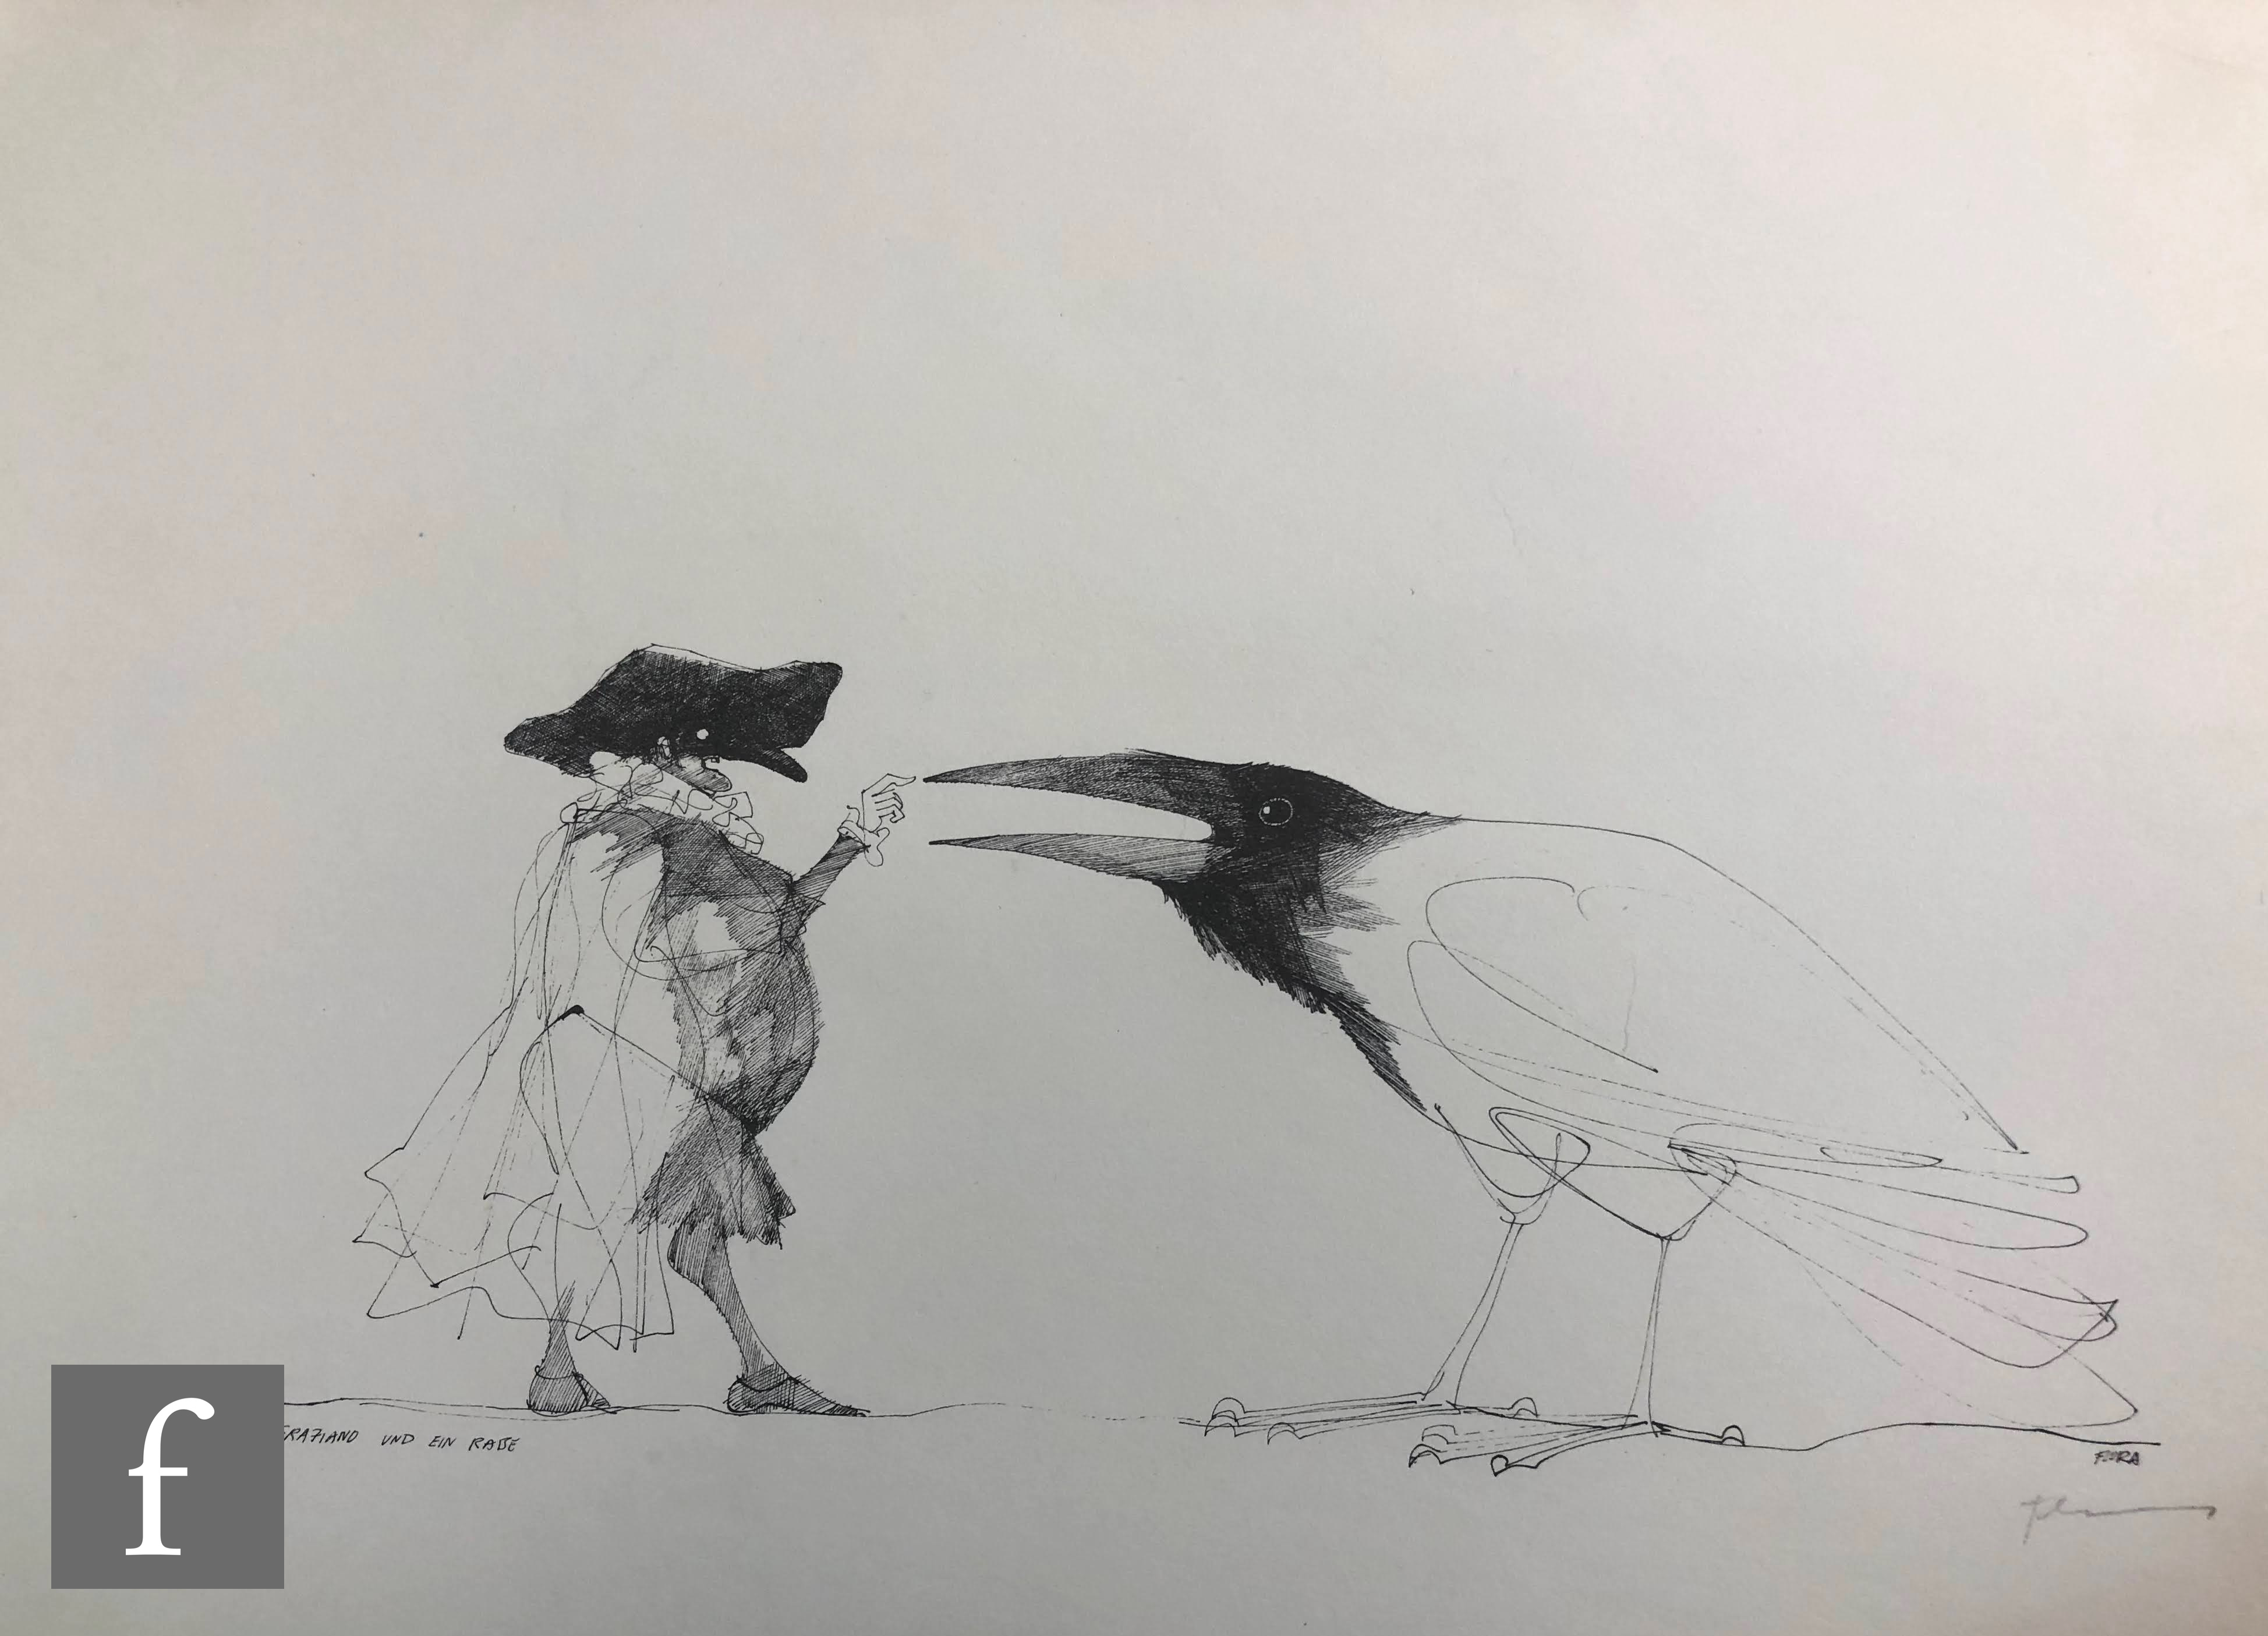 AFTER PAUL FLORA - Die Raben (The Ravens), a set of lithographs in original folder signed and